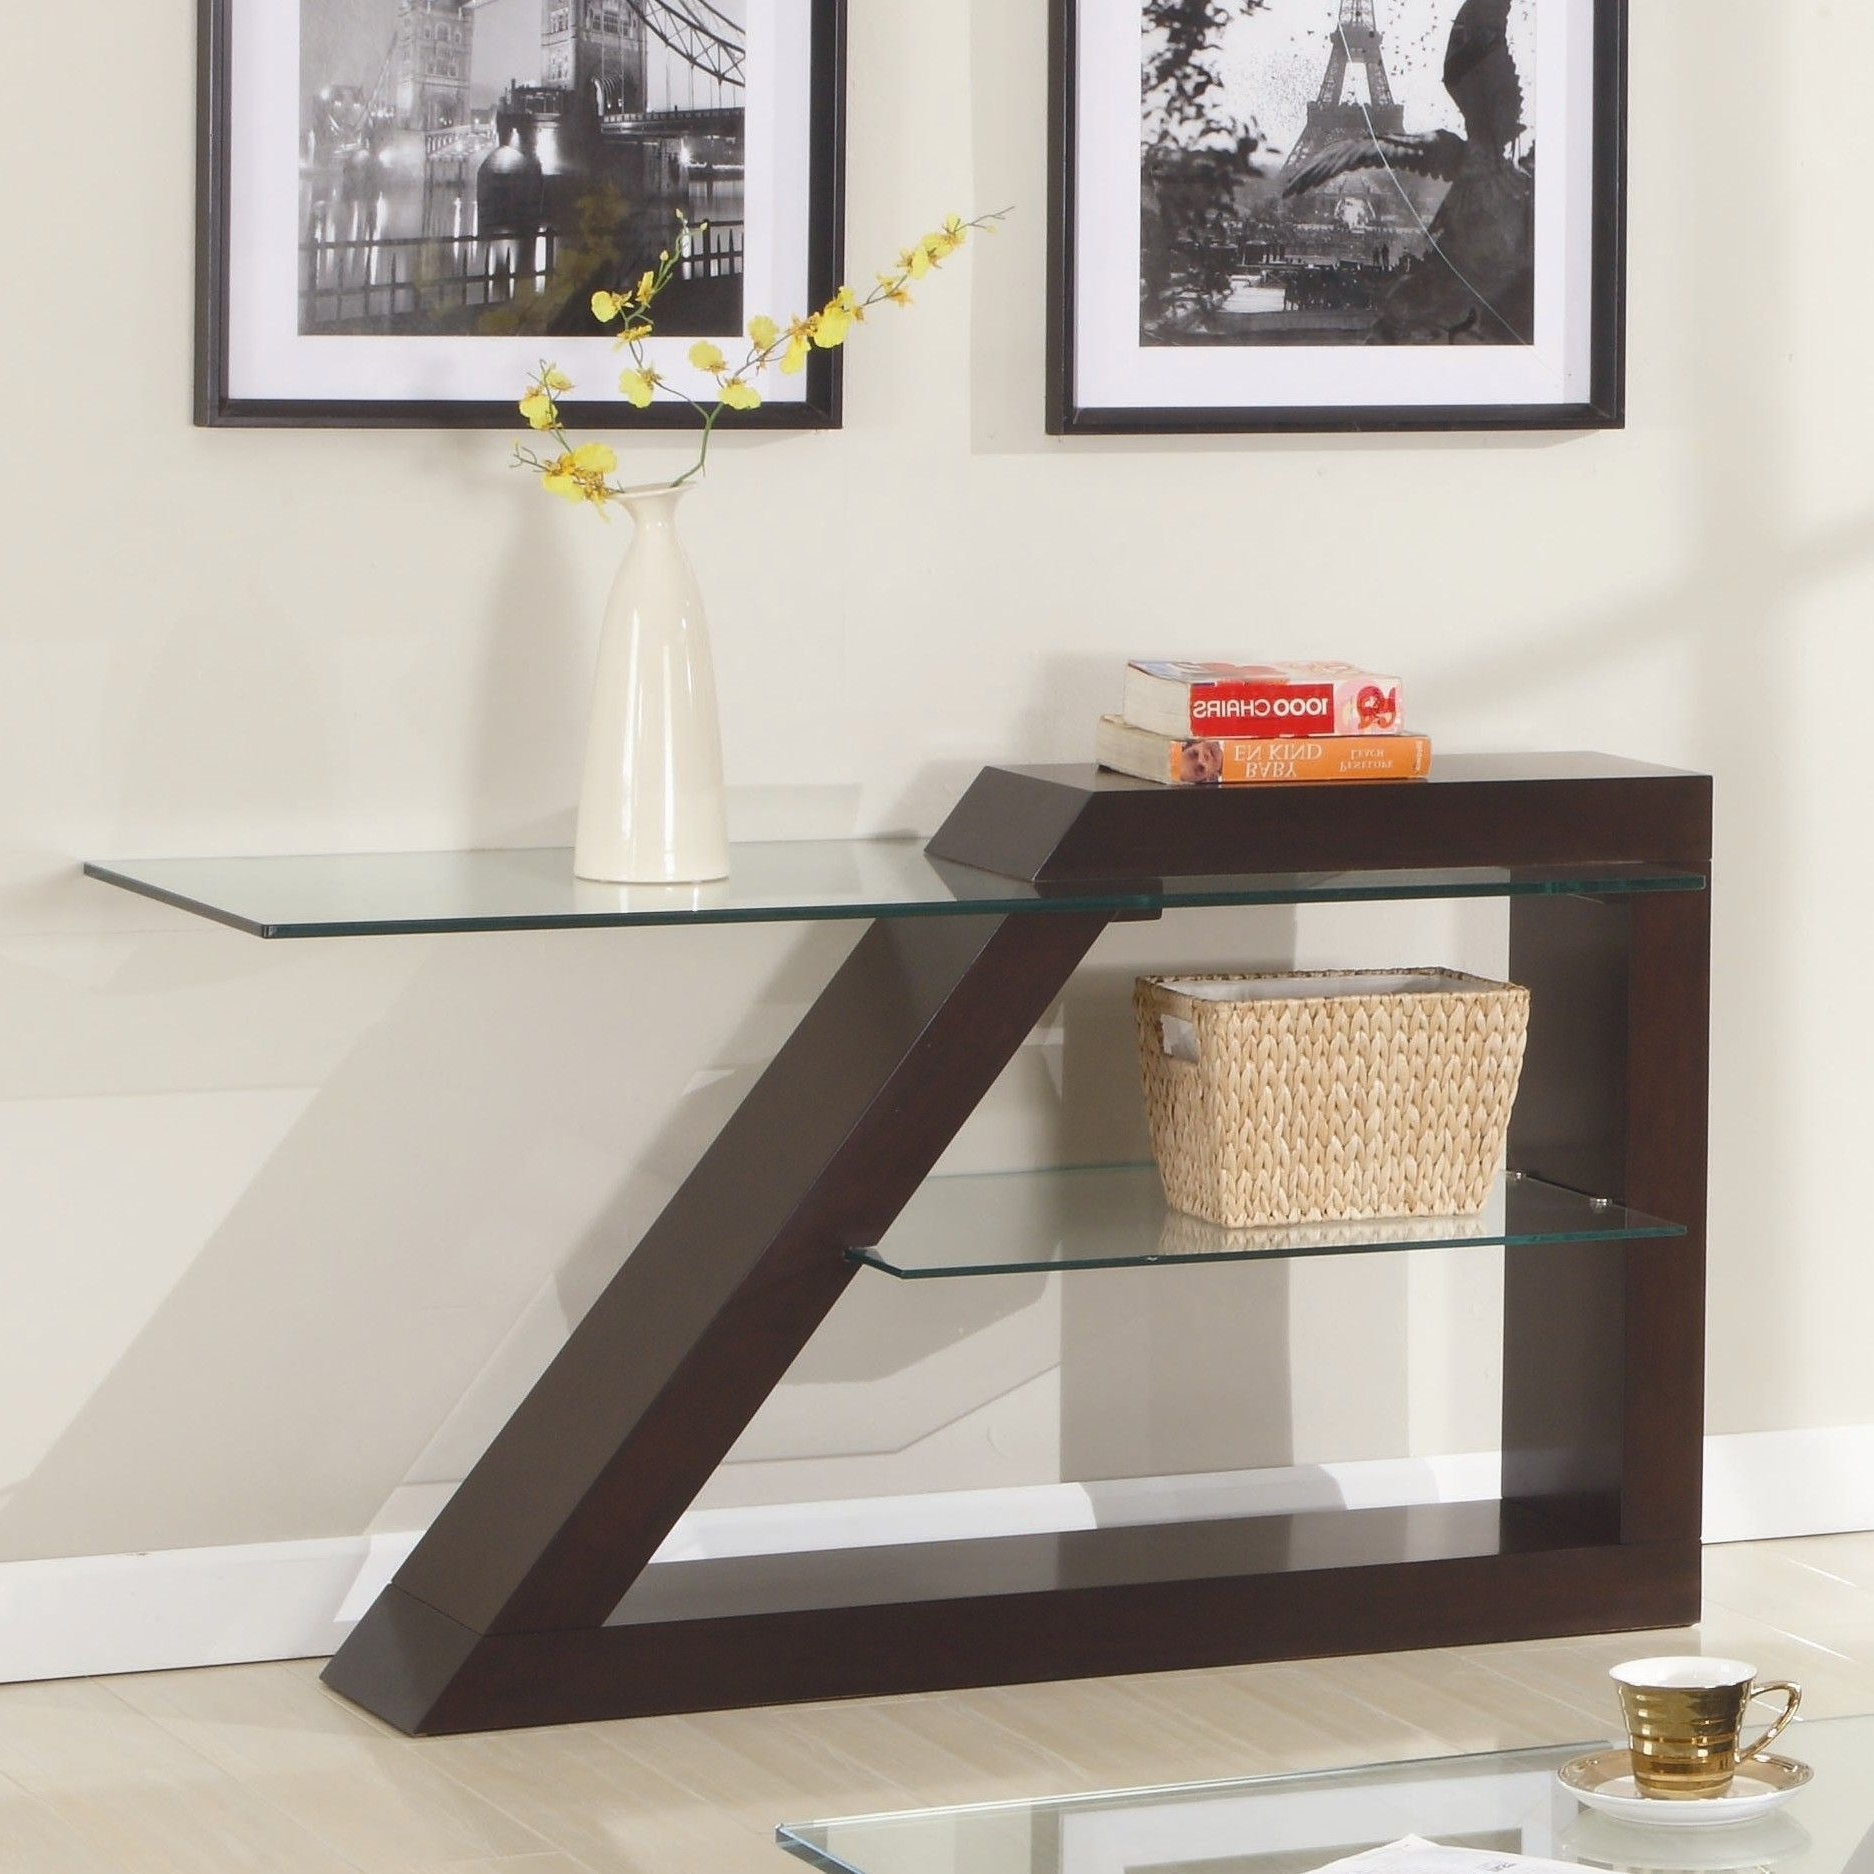 Parsons Travertine Top & Dark Steel Base 48X16 Console Tables With Best And Newest Jensen Console Table (Gallery 11 of 20)